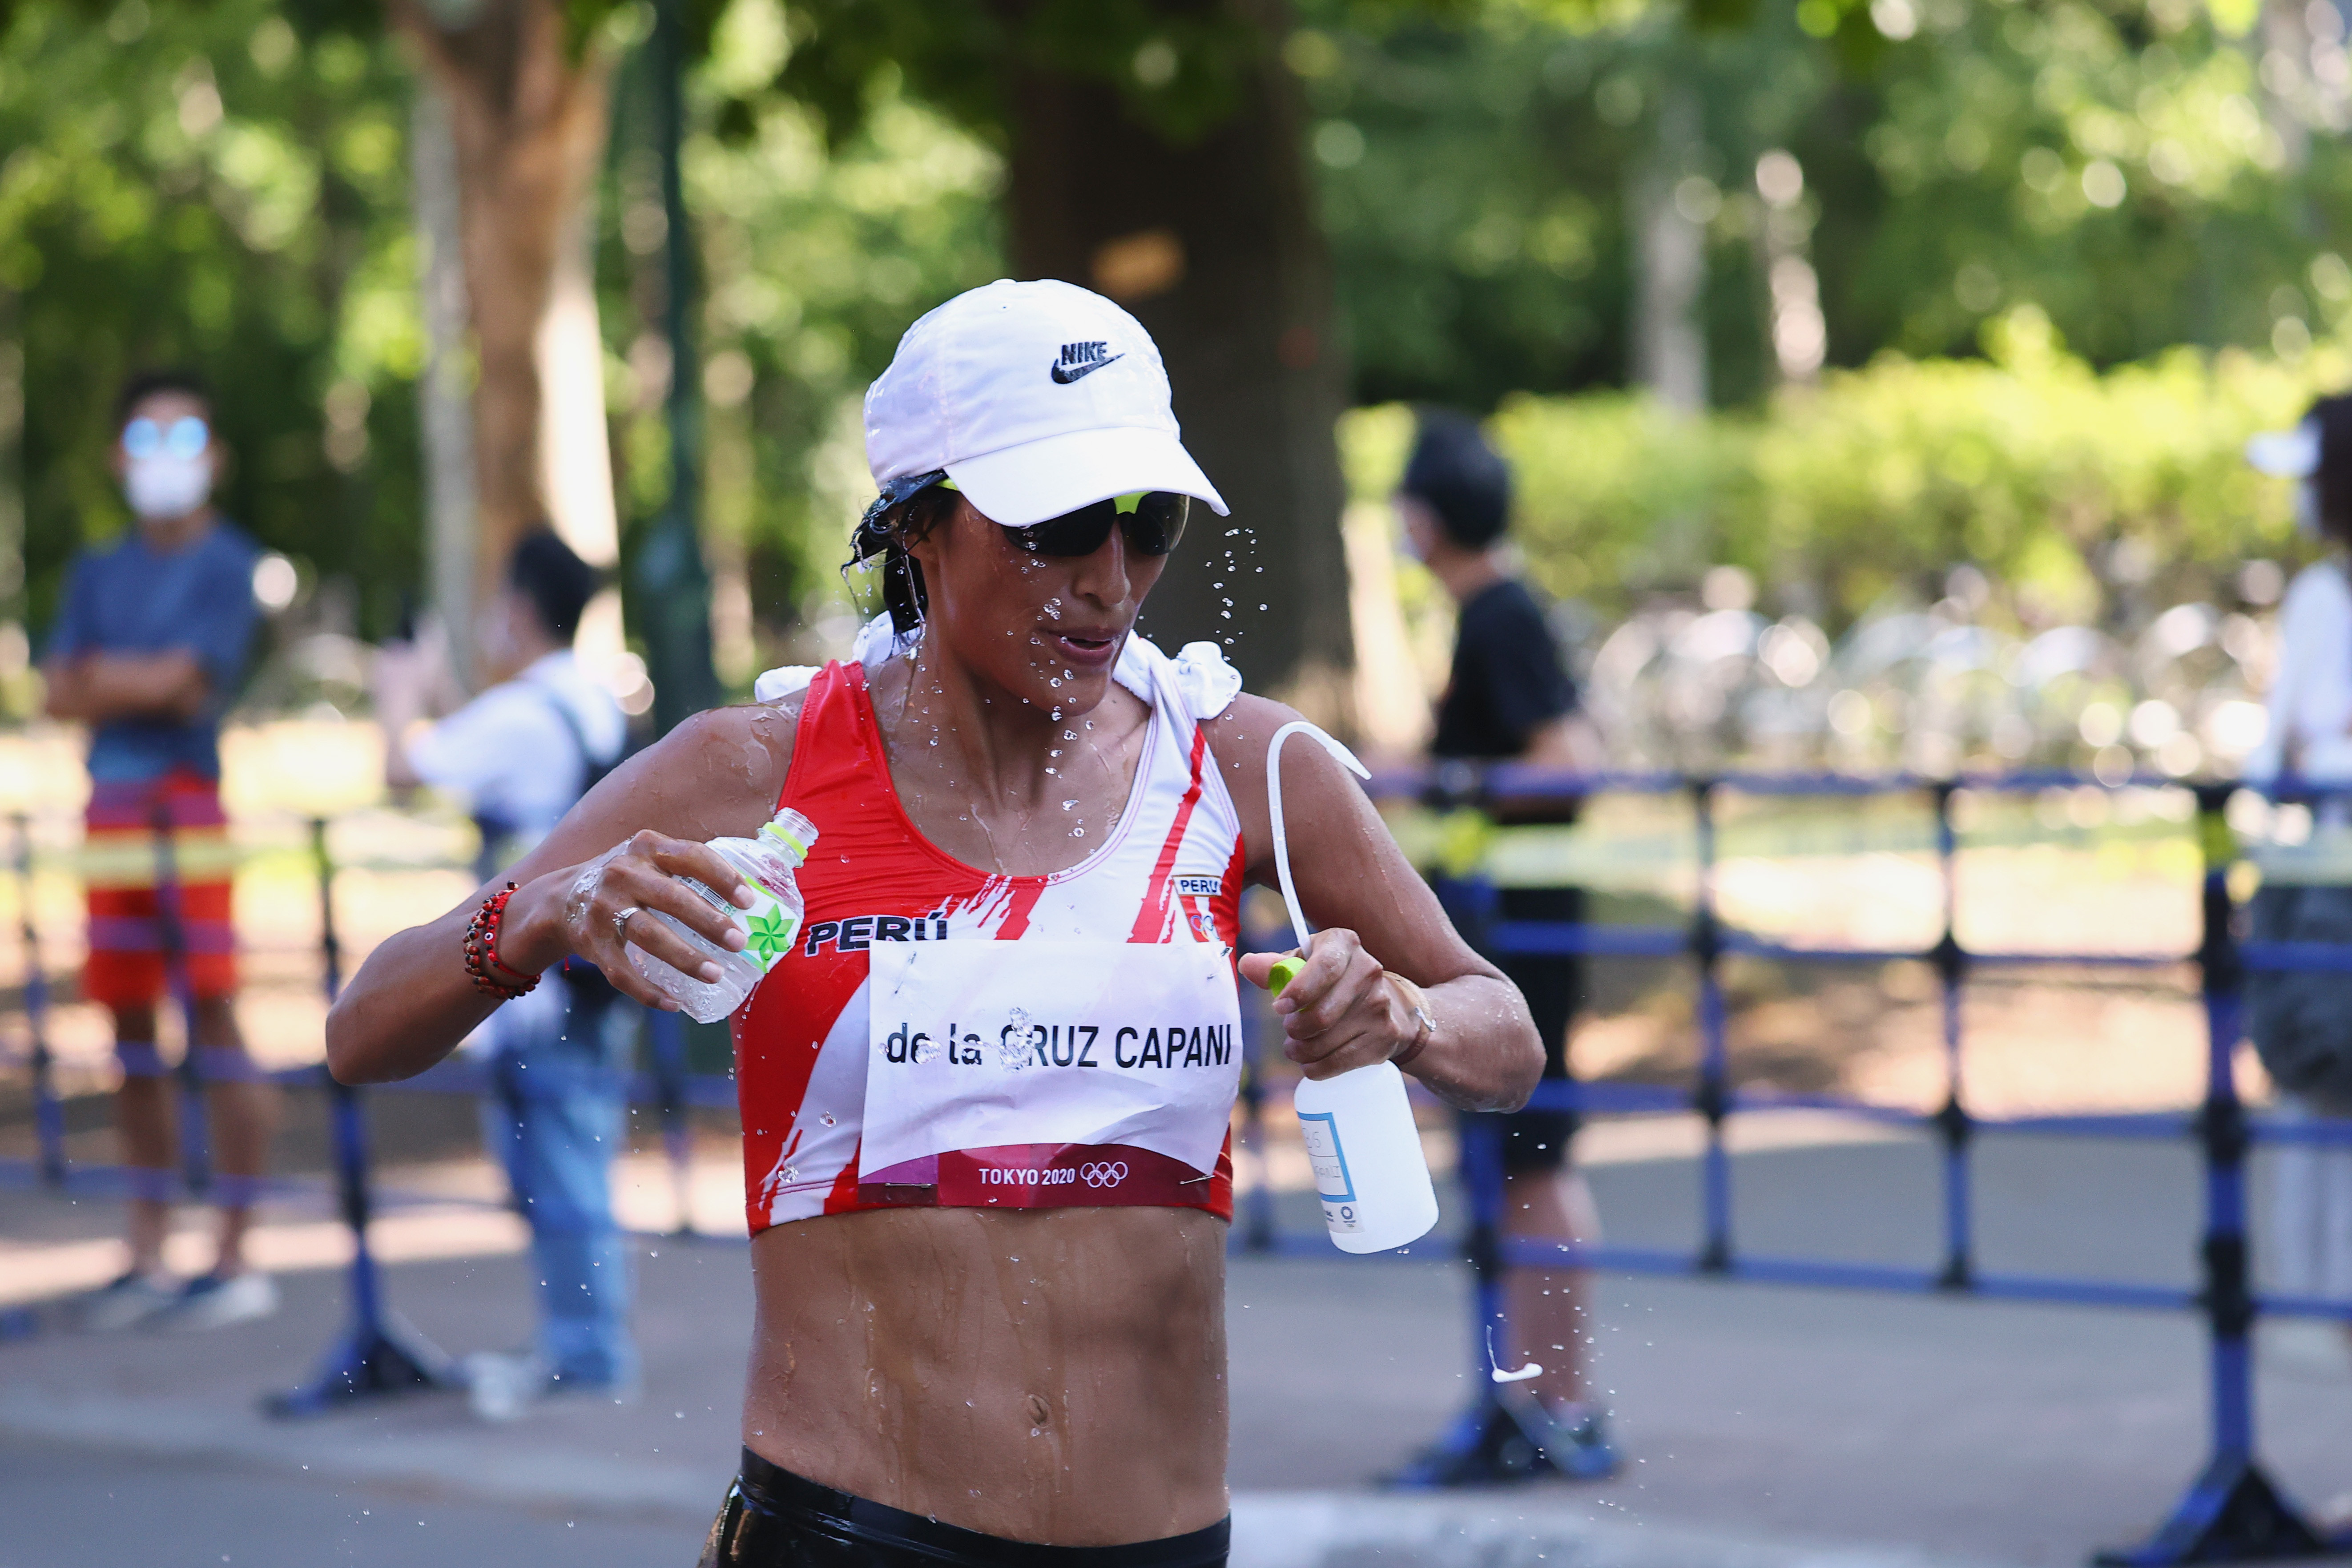 Tokyo 2020 Olympics: an athlete in the women's marathon splashes quarter on her face to cool down